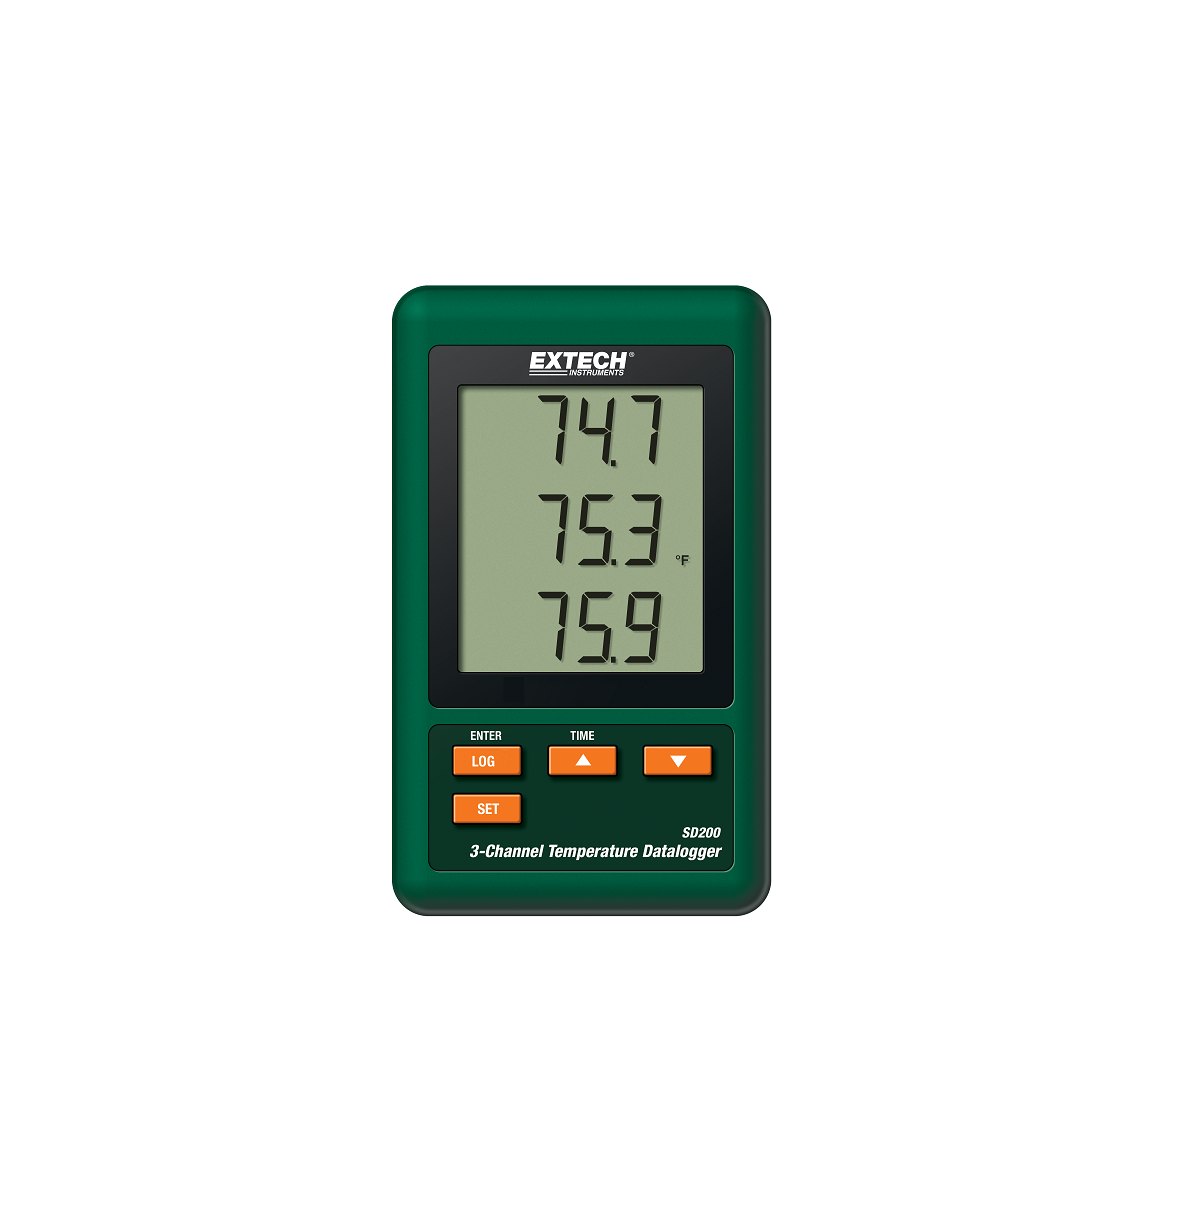 Extech SD200 3-Channel Temperature Data Logger